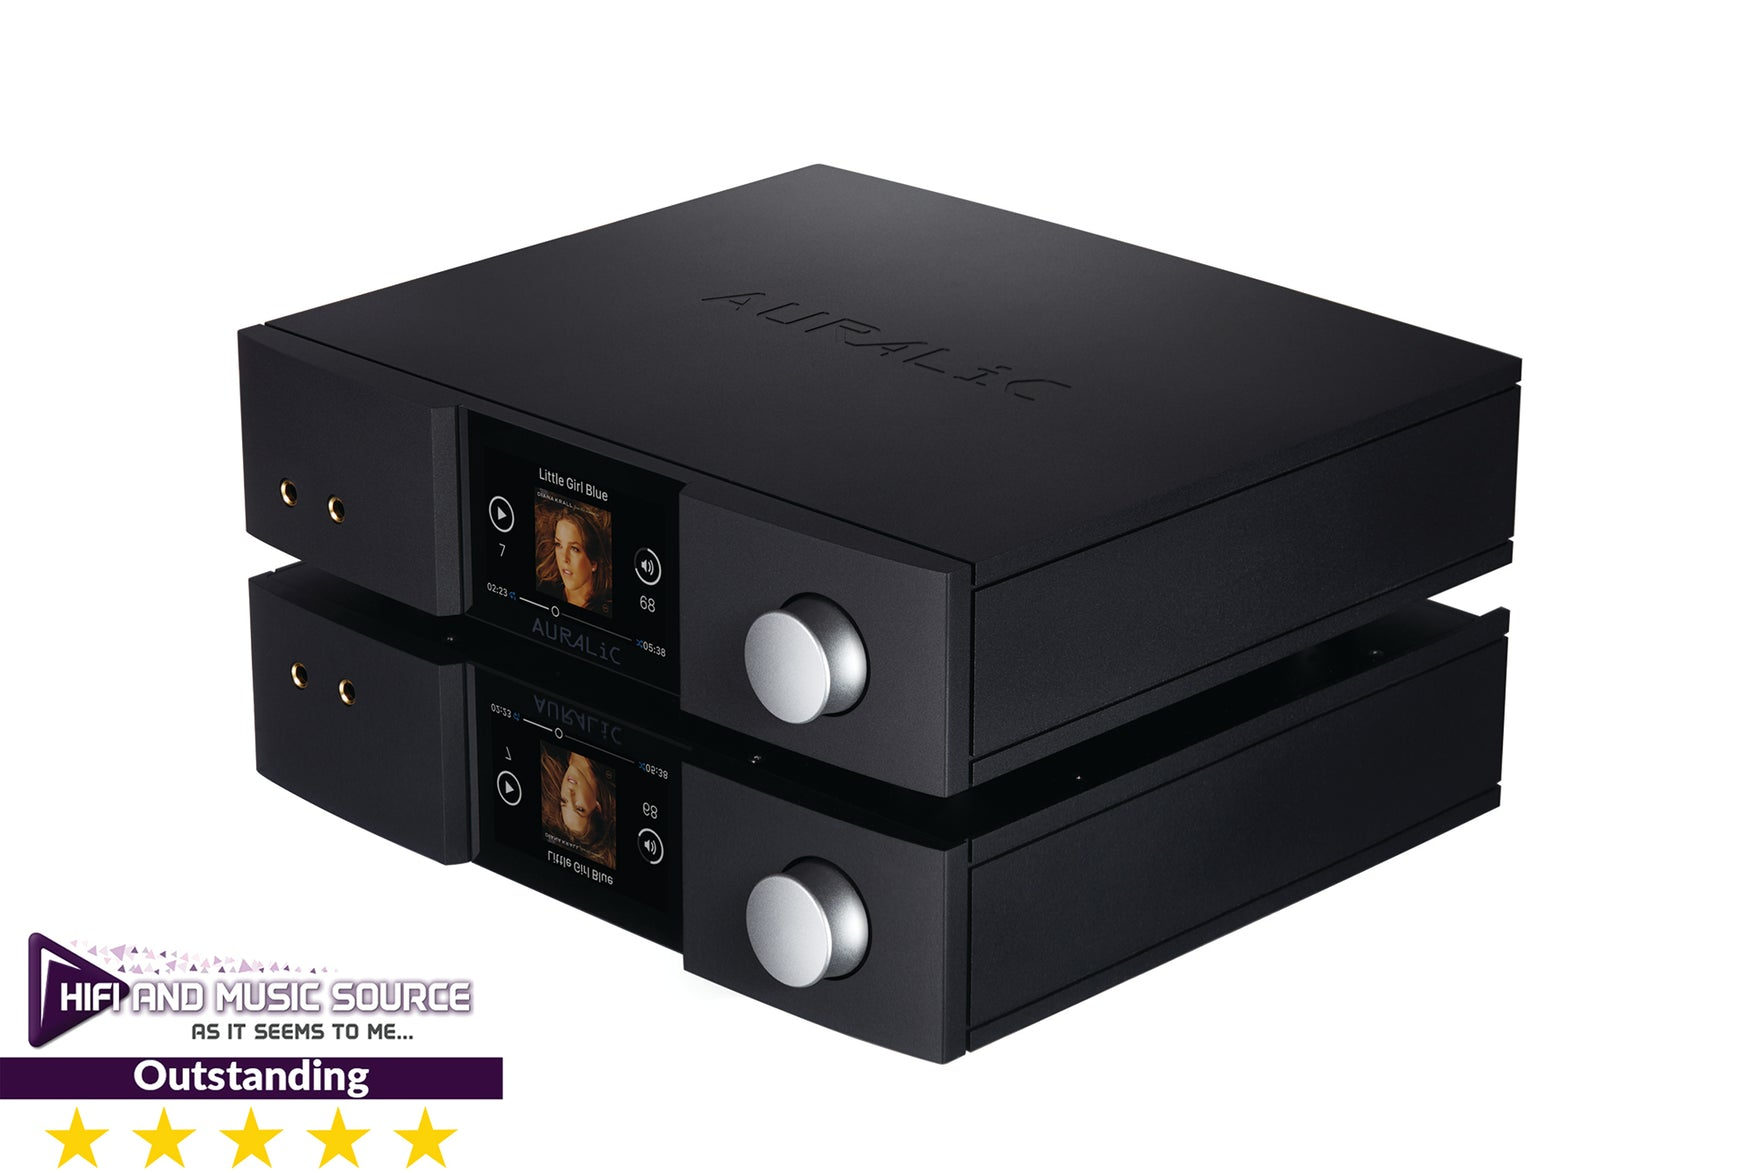 Auralic Vega G1 Streaming DAC Review - HIFI AND MUSIC SOURCE